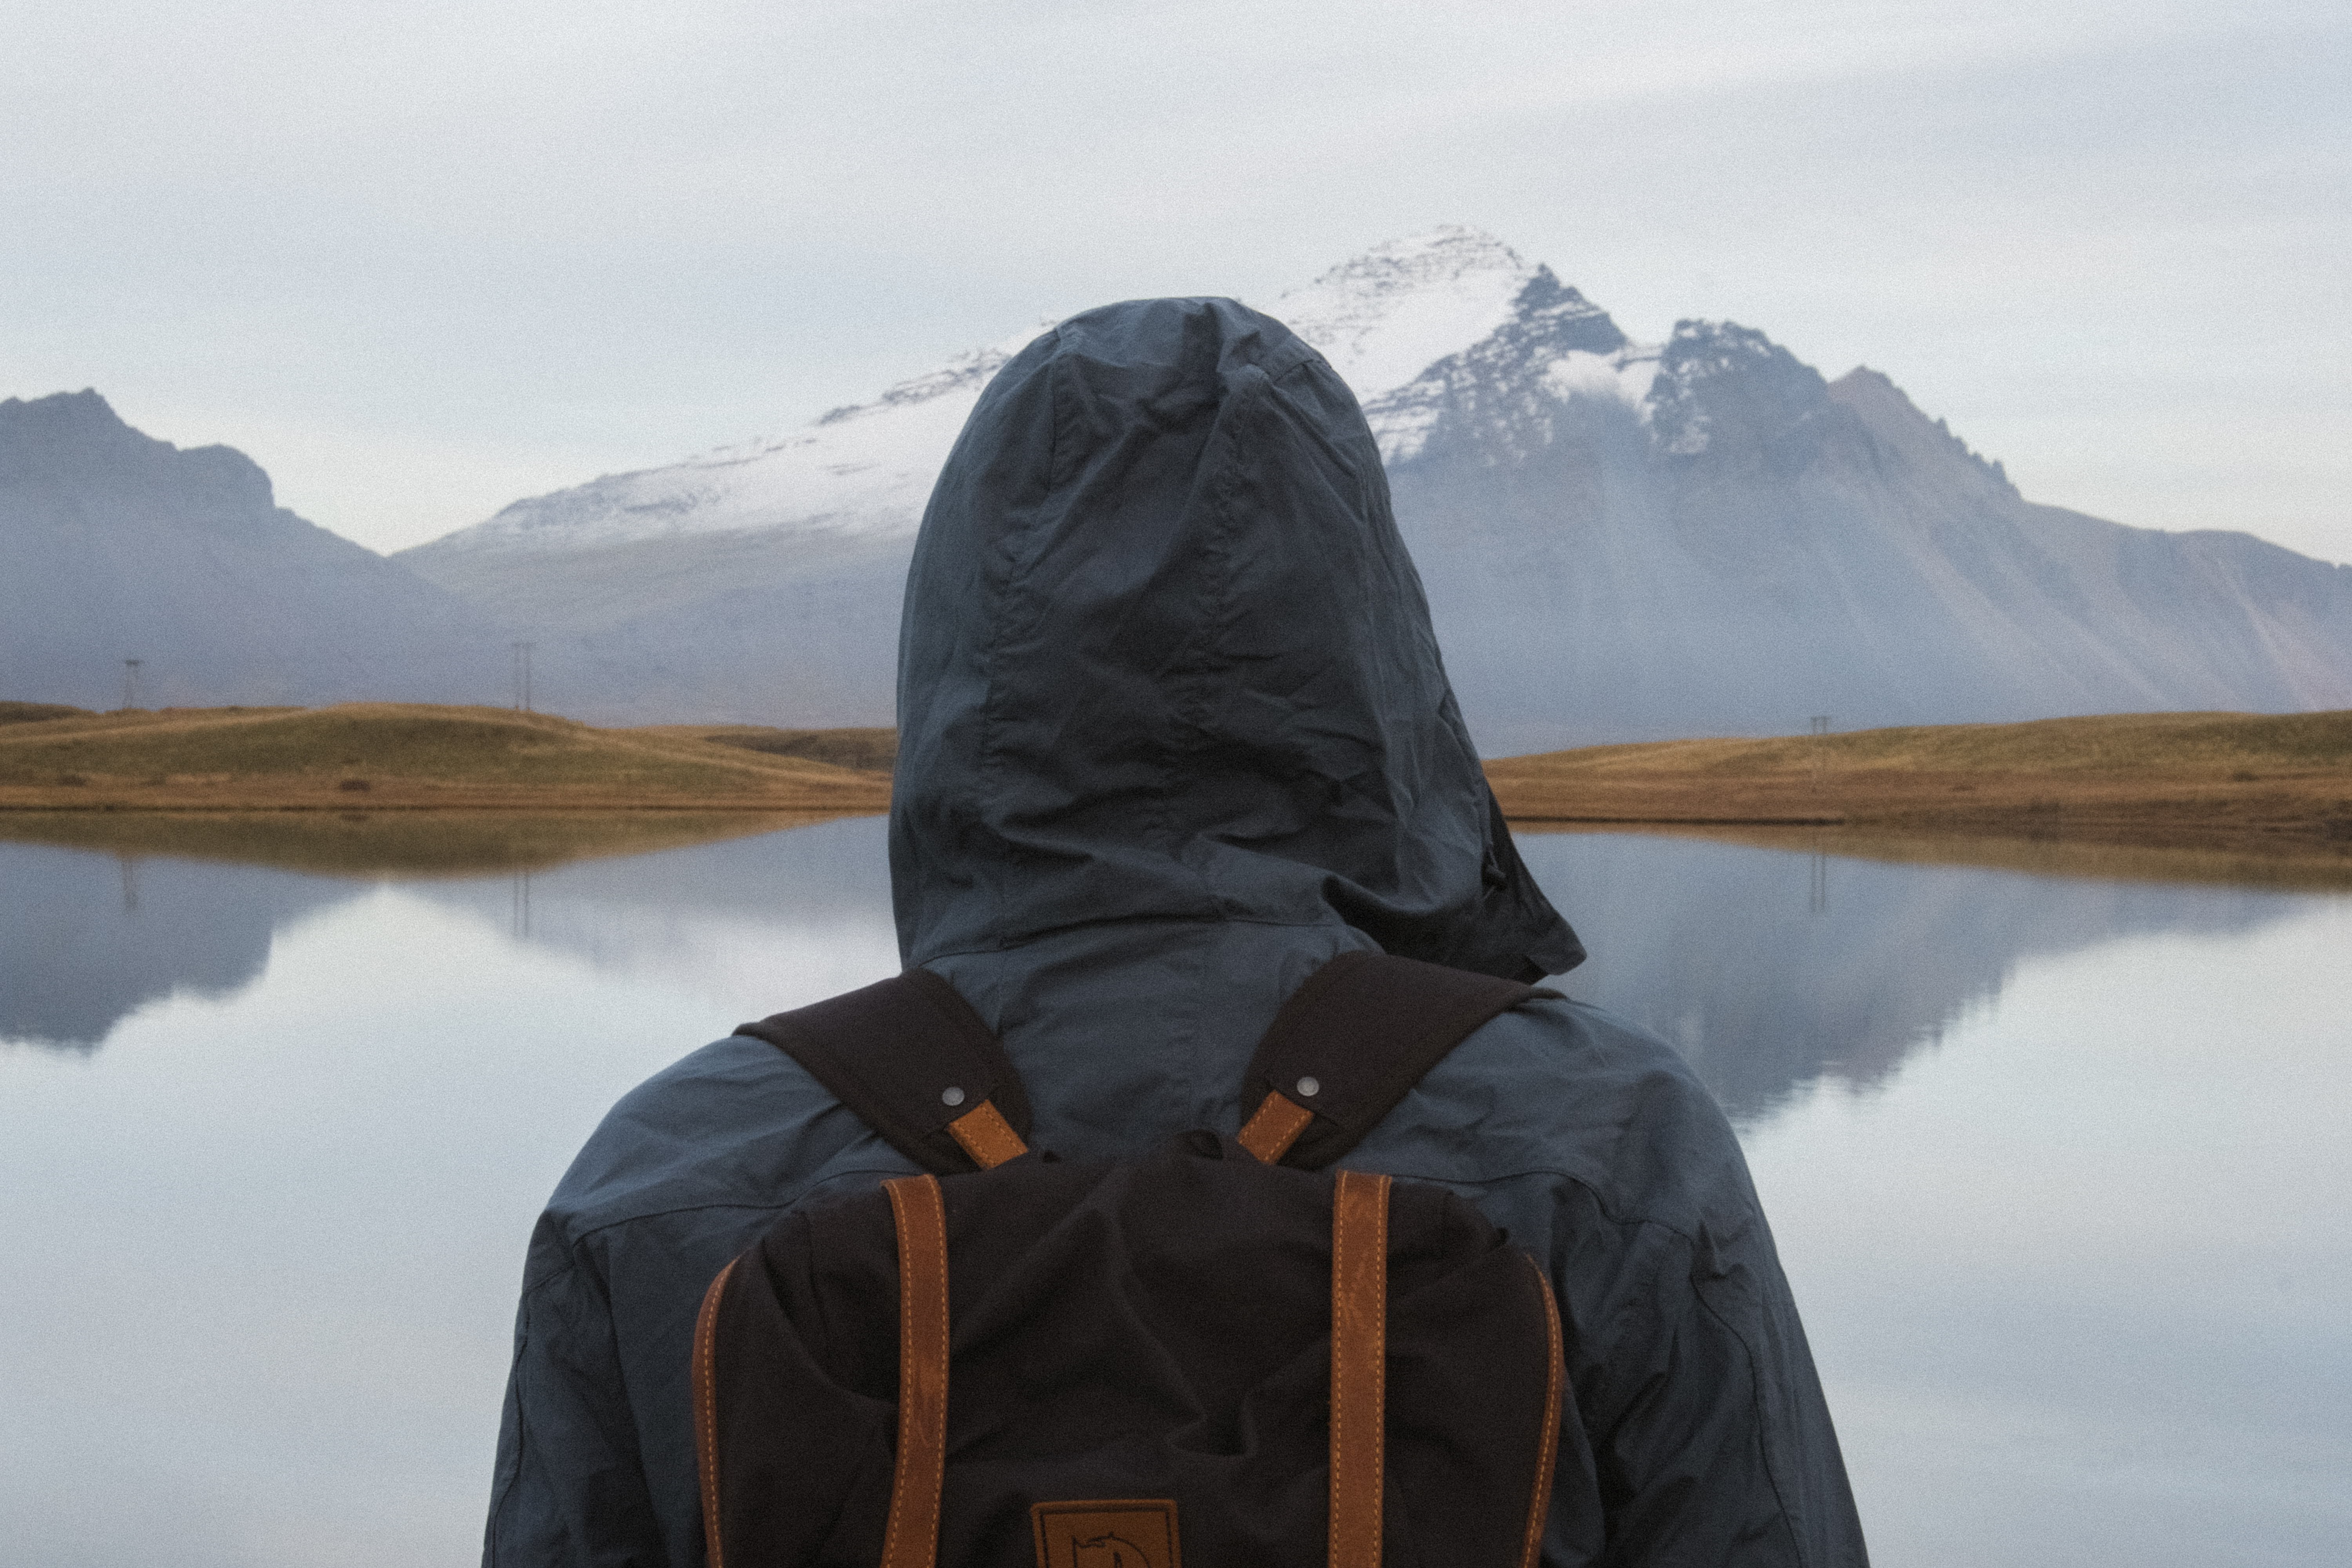 person with backpack standing near body of water during daytime